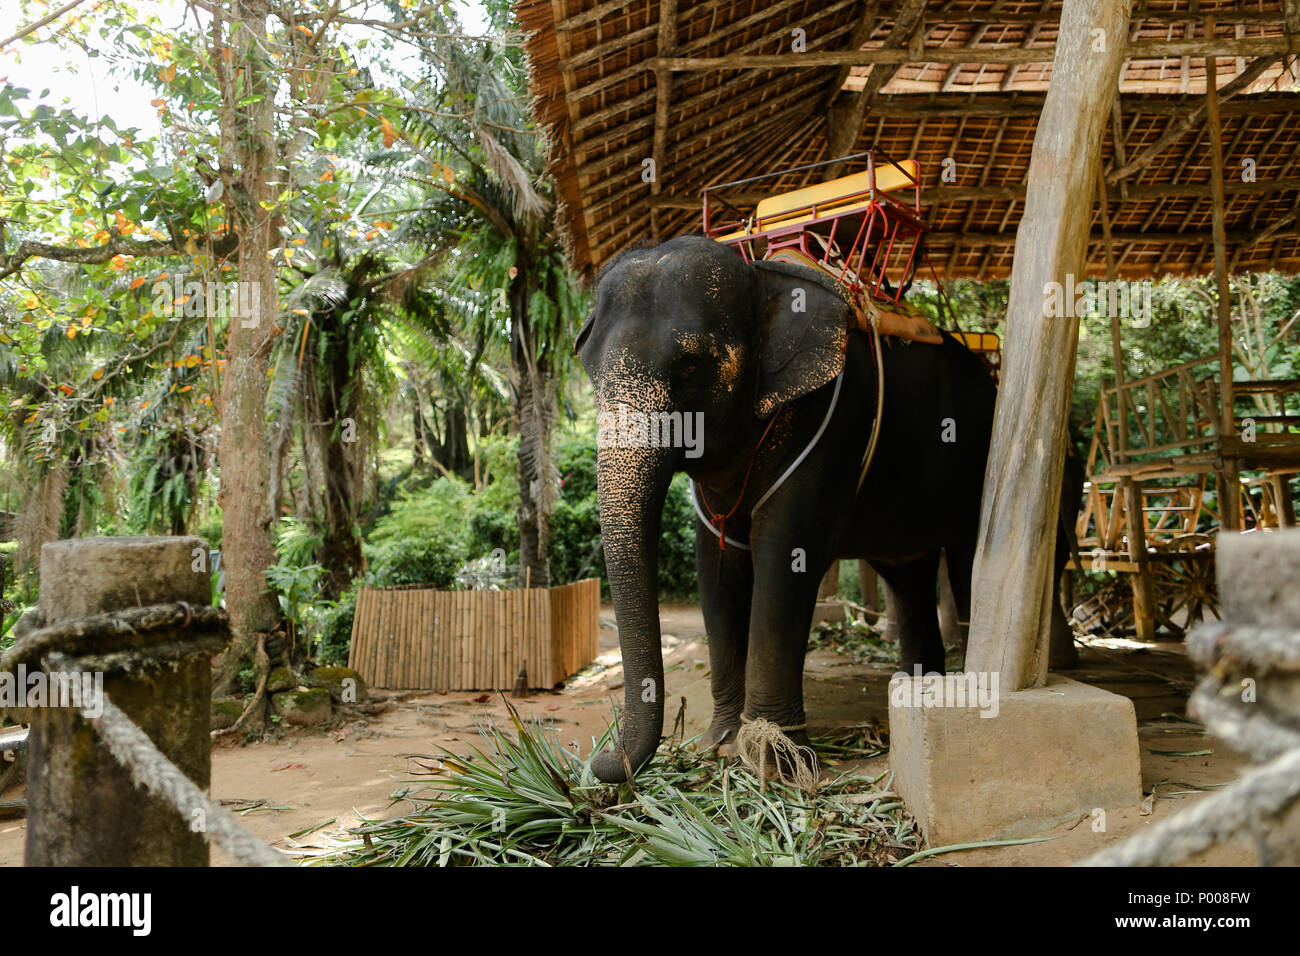 Domesticated and tied big elephant standing with saddle. - Stock Image